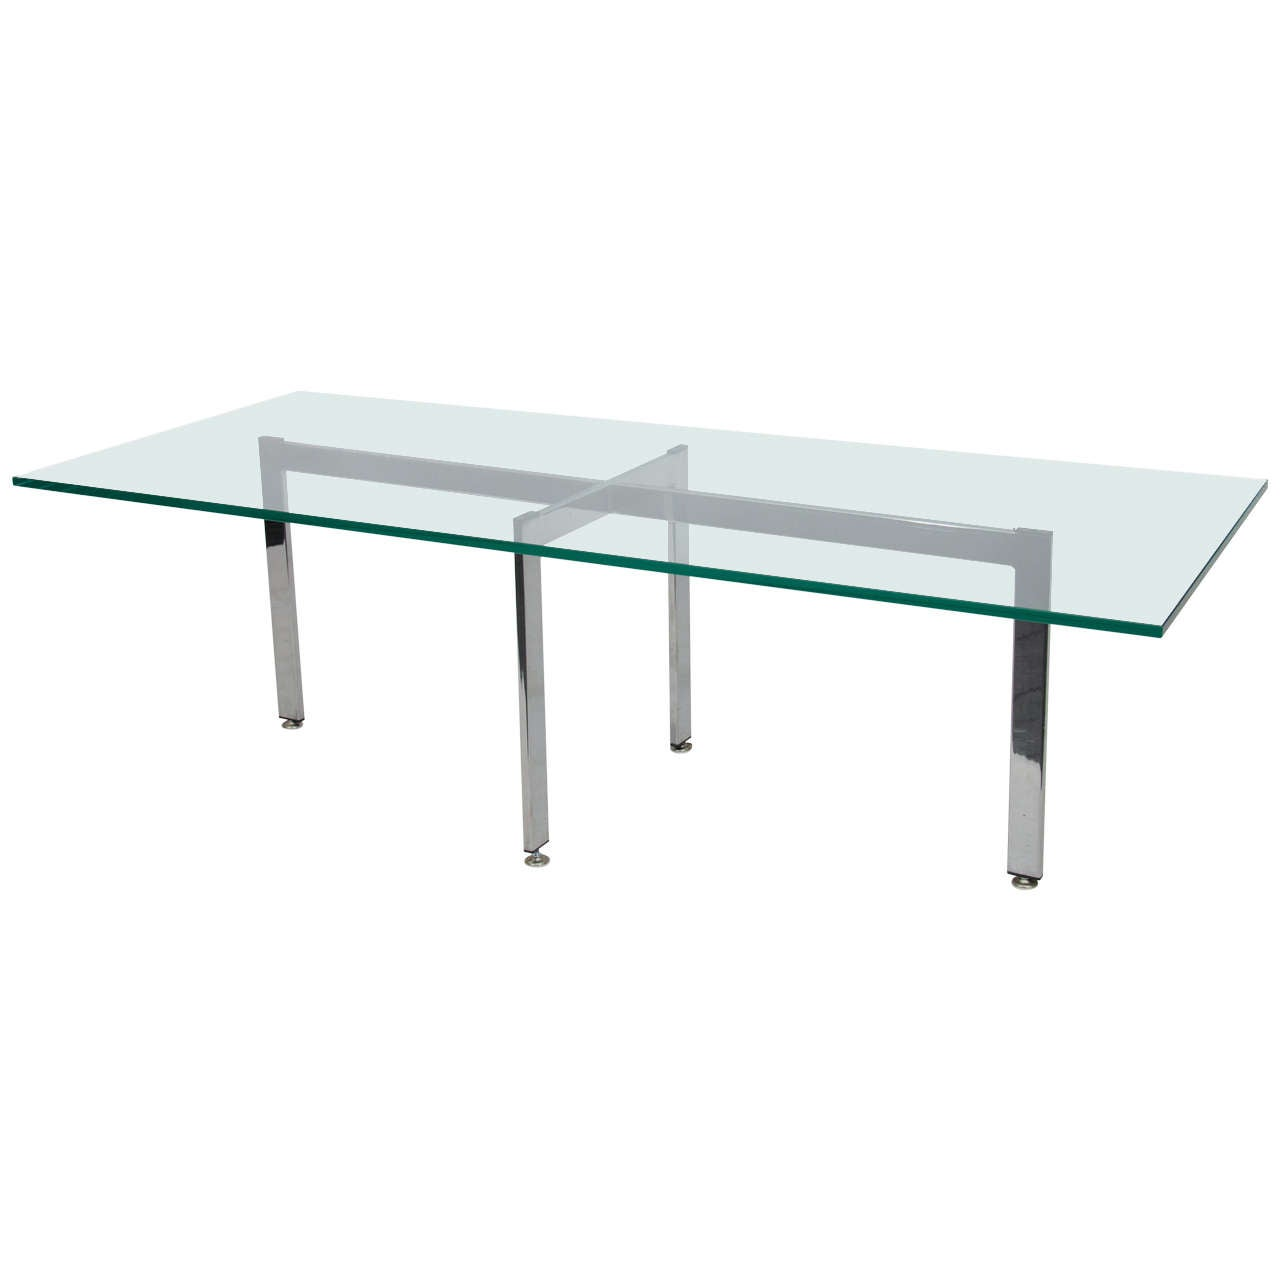 Chrome and glass rectangular coffee table at 1stdibs for Glass coffee table